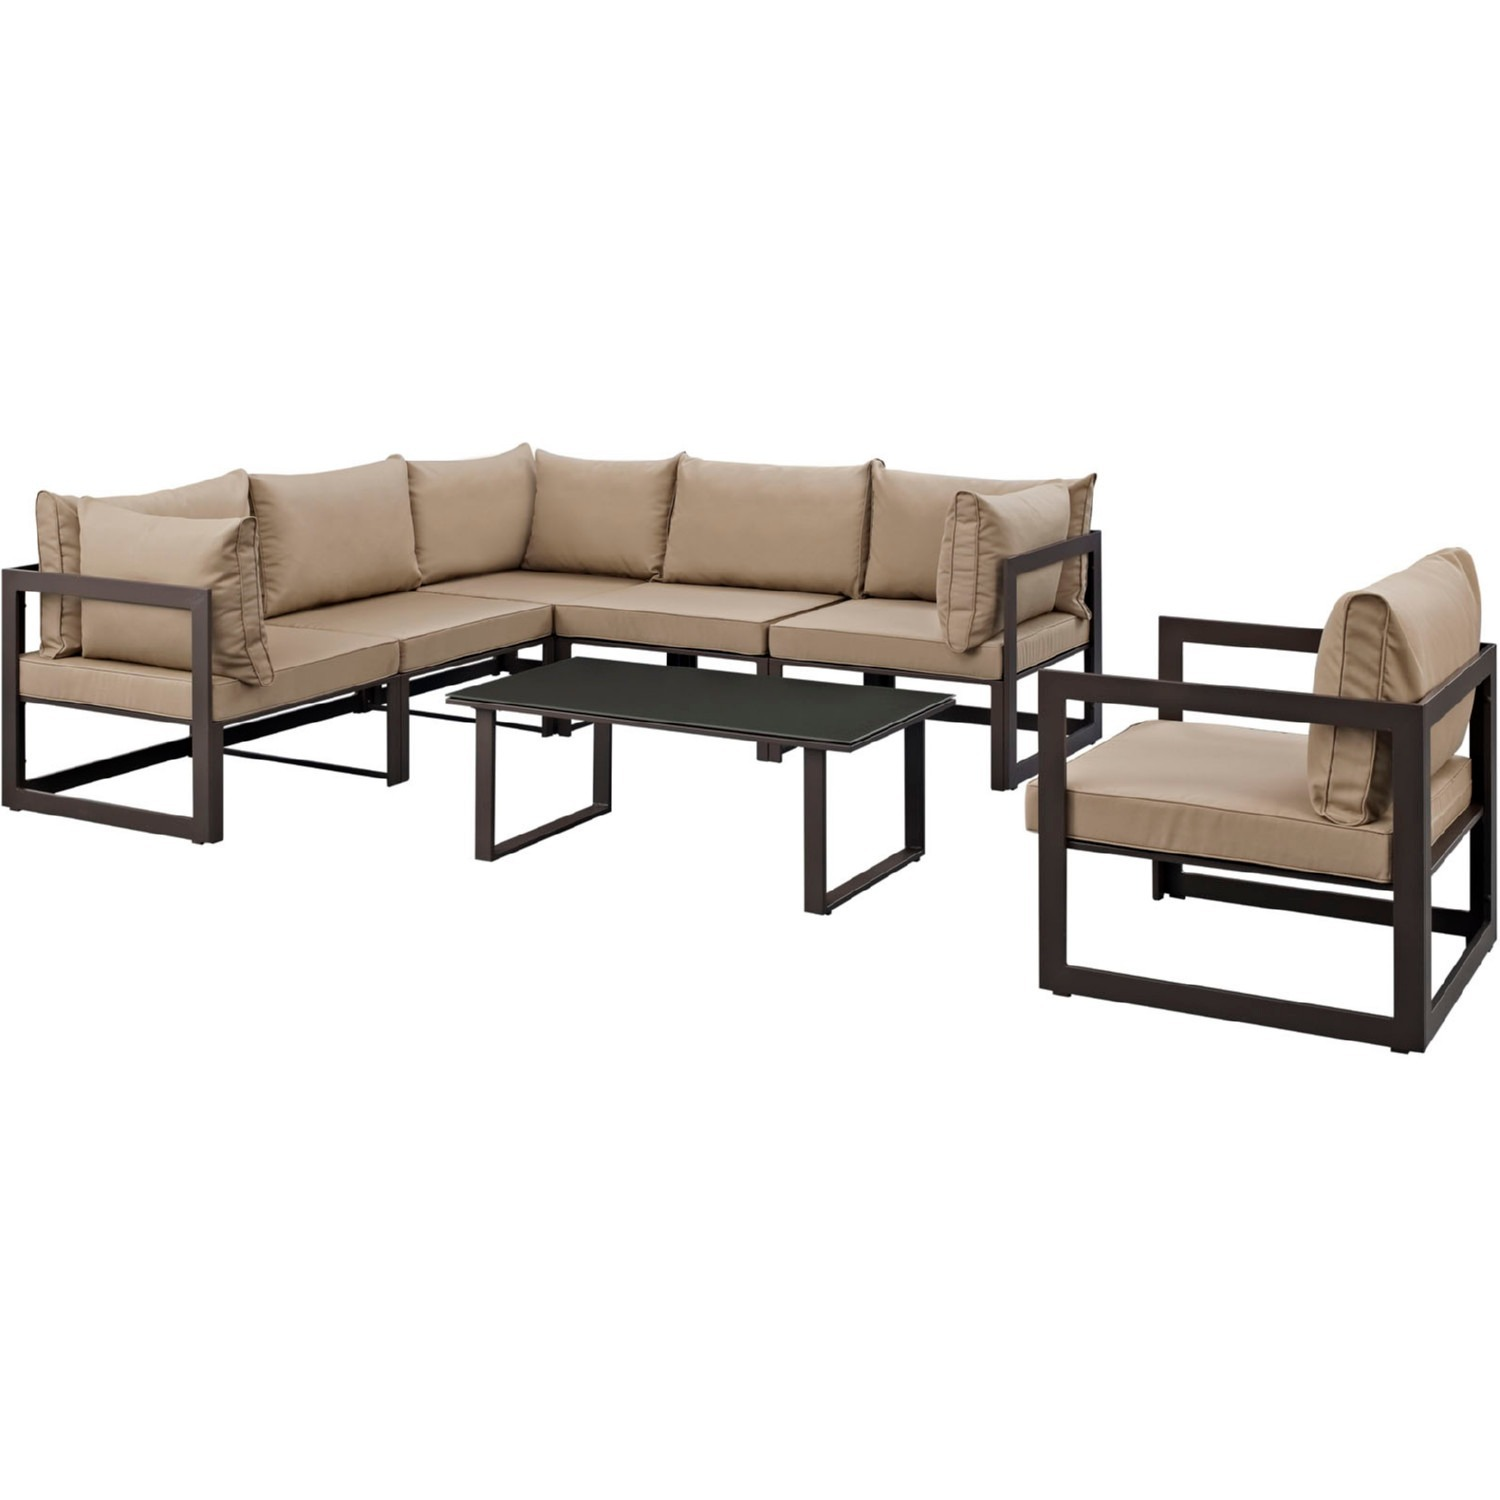 7-Piece Outdoor Sectional In Mocha & Brown Finish - image-2